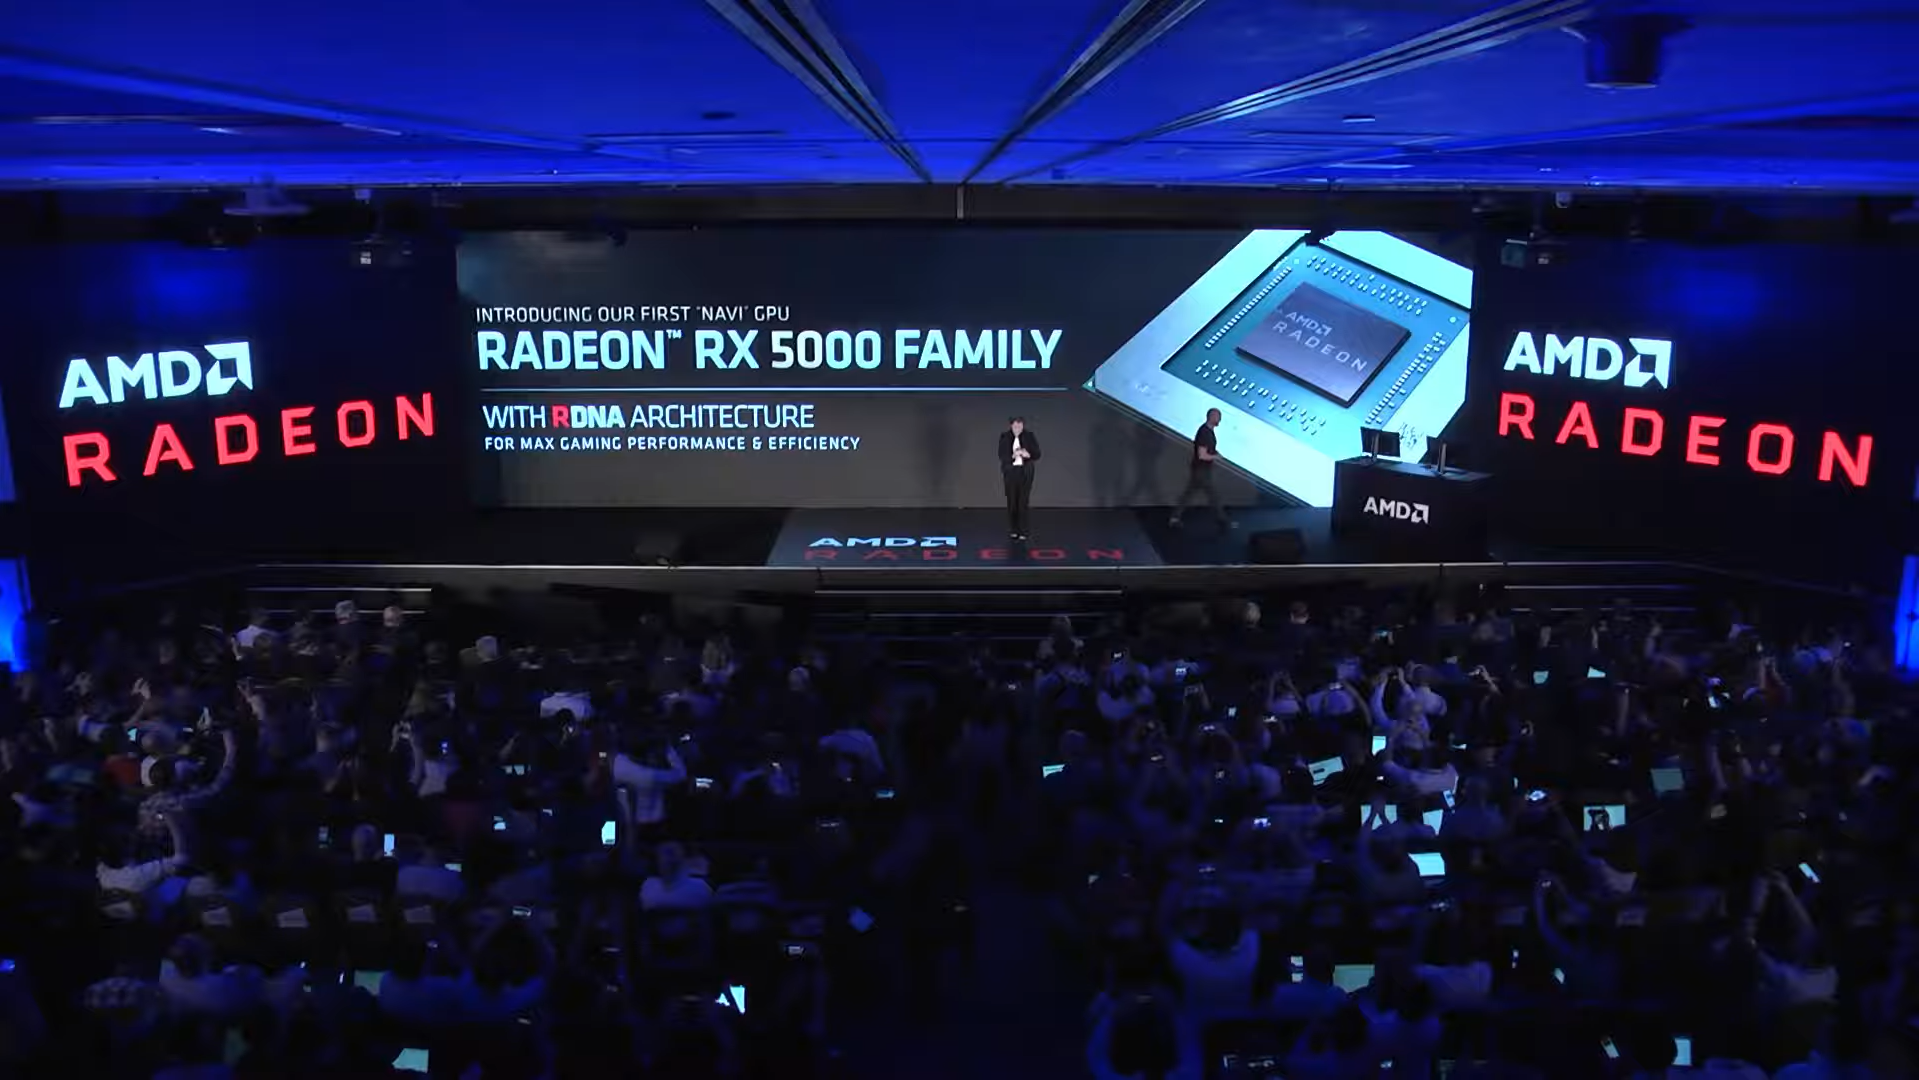 Amd Navi Everything We Know So Far About Big Navi From Ray Tracing To Release Date Amd Nvidia Release Date